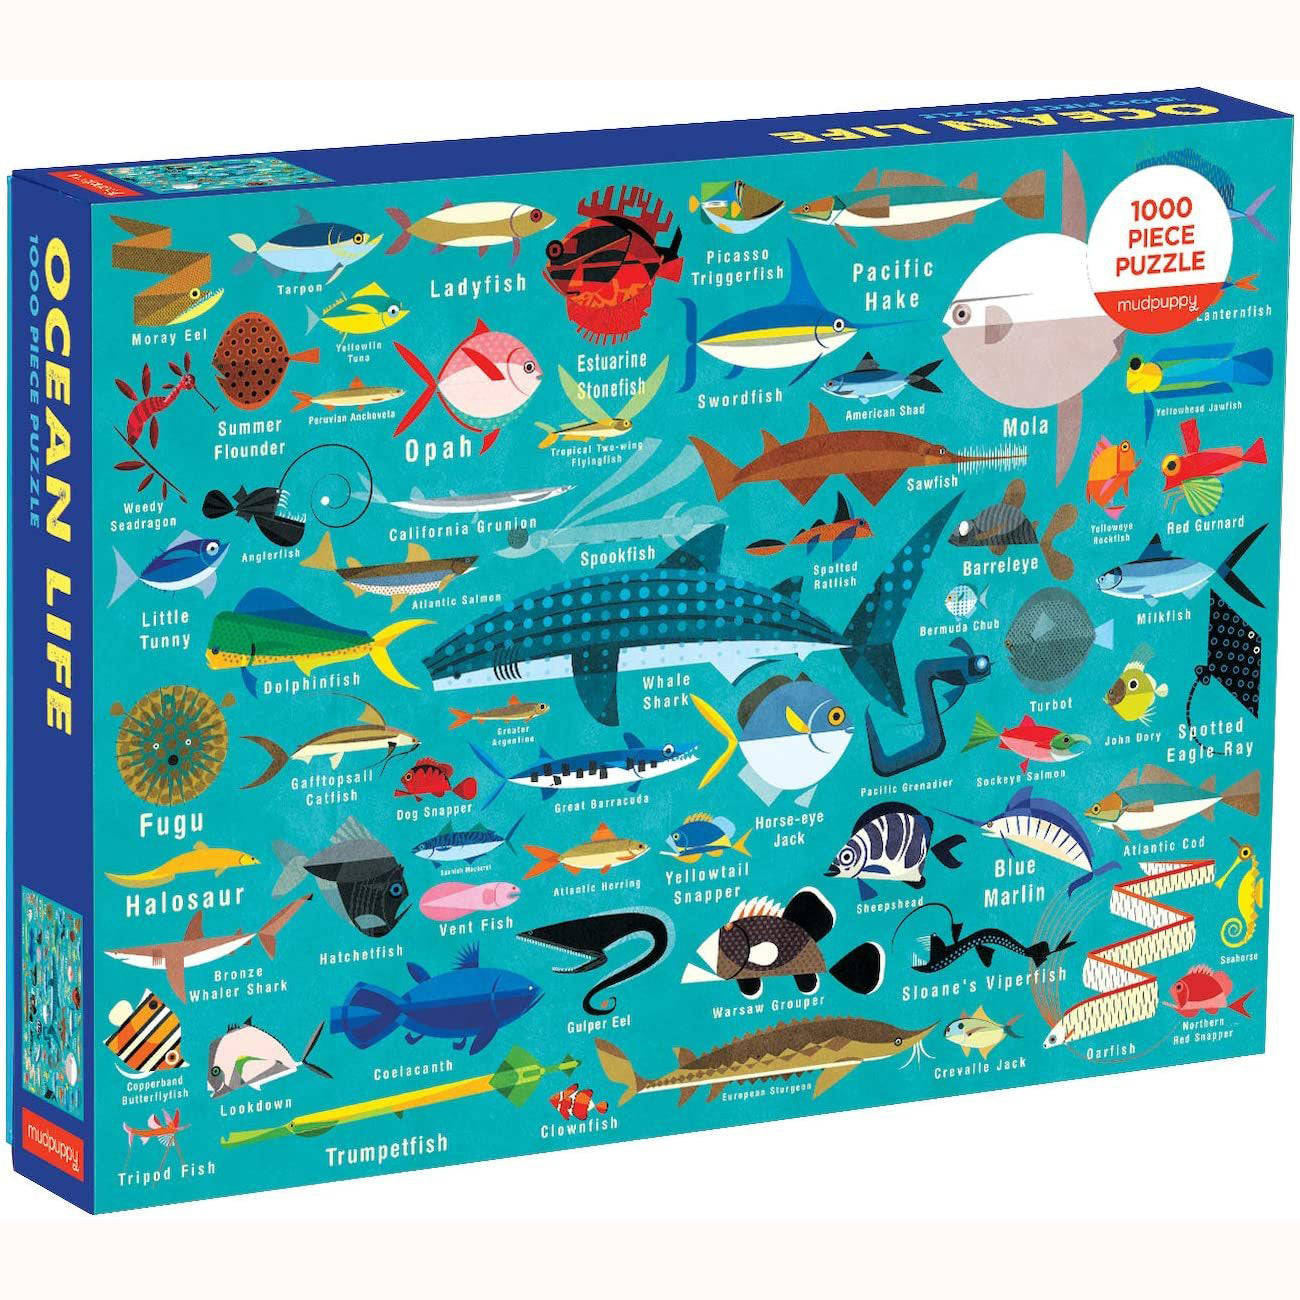 Ocean Life Puzzle, boxed